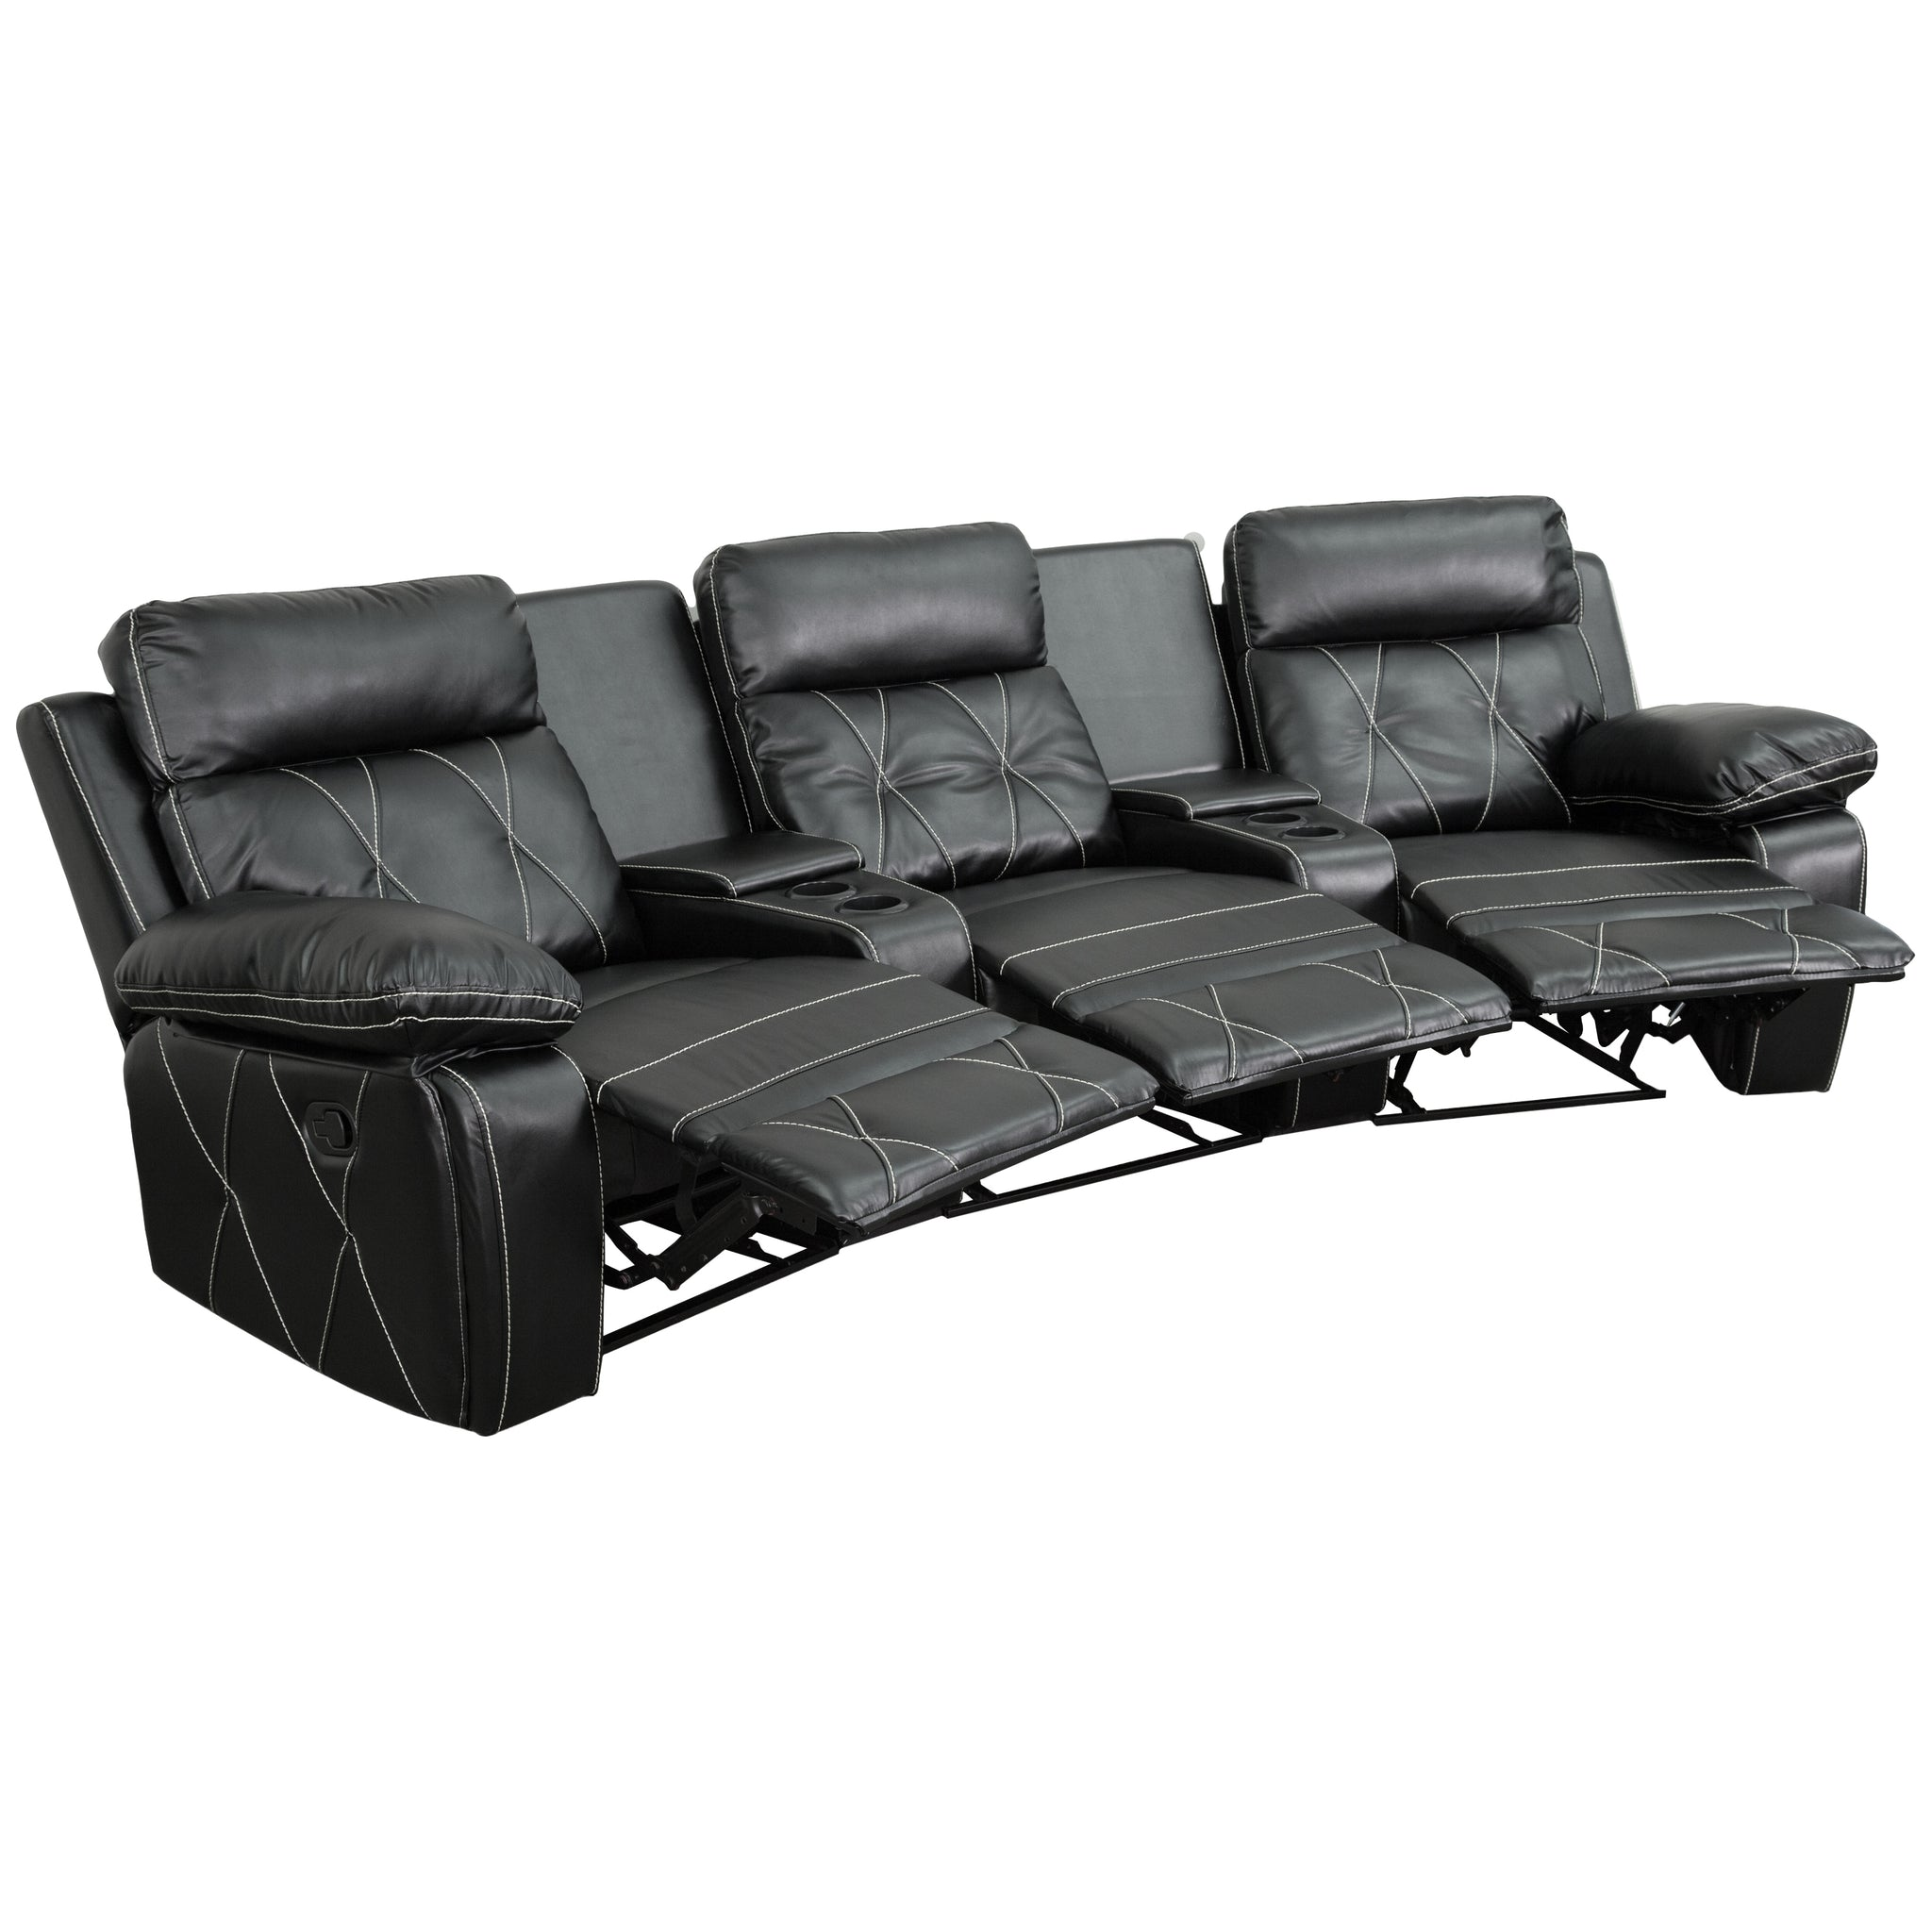 Reel Comfort Series 3-Seat Reclining Leather Theater Seating Unit with Curved Cup Holders: Black